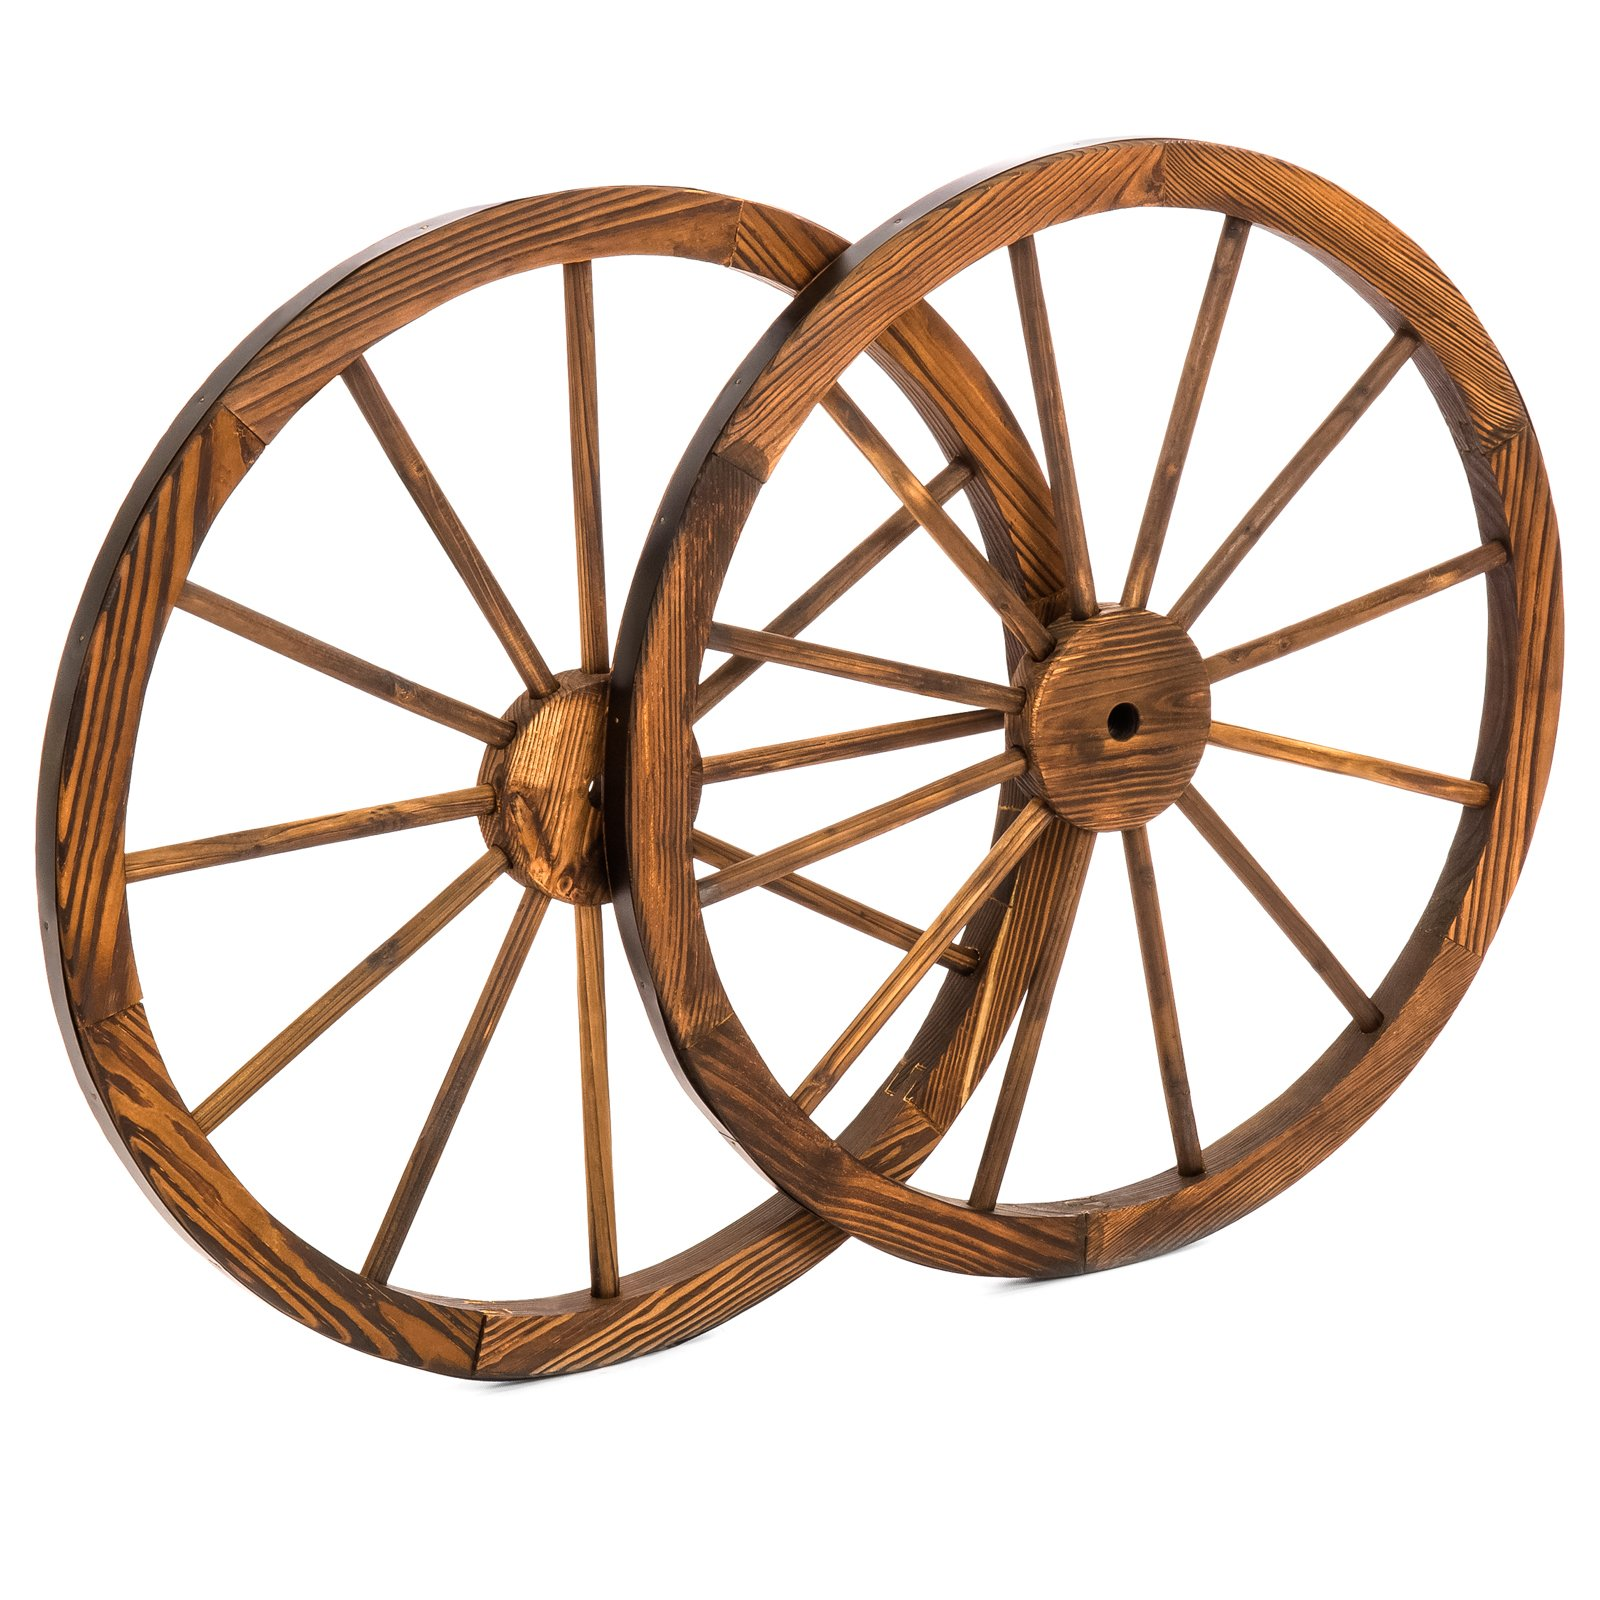 Best Choice Products 30'' Set of 2 Decorative Wall Accent Old Western Wooden Garden Wagon Wheel w/Steel Rims by Best Choice Products